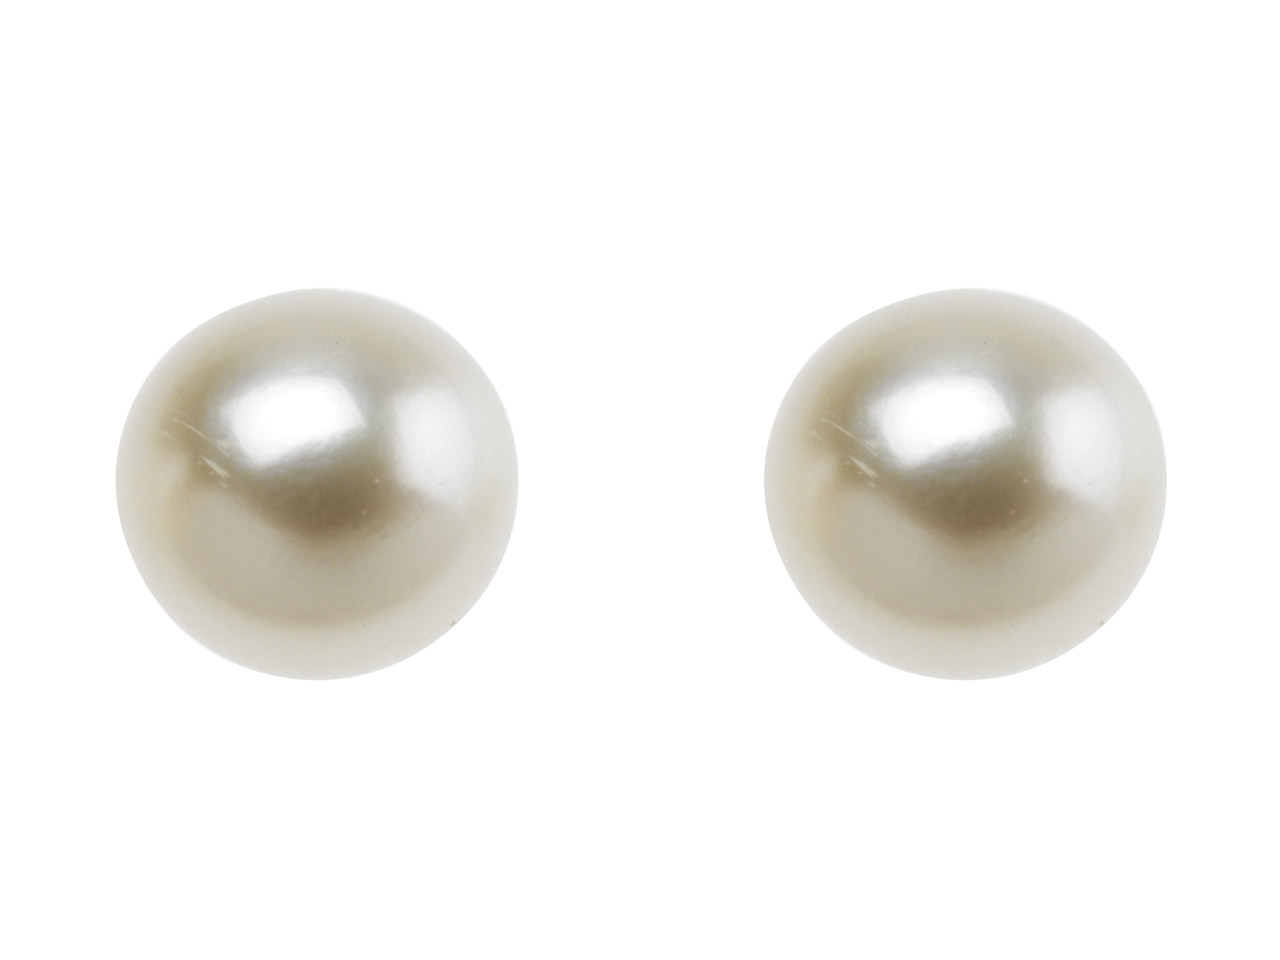 Cultured Pearl Pair Full Round     Half Drilled 3.5-4mm White         Freshwater